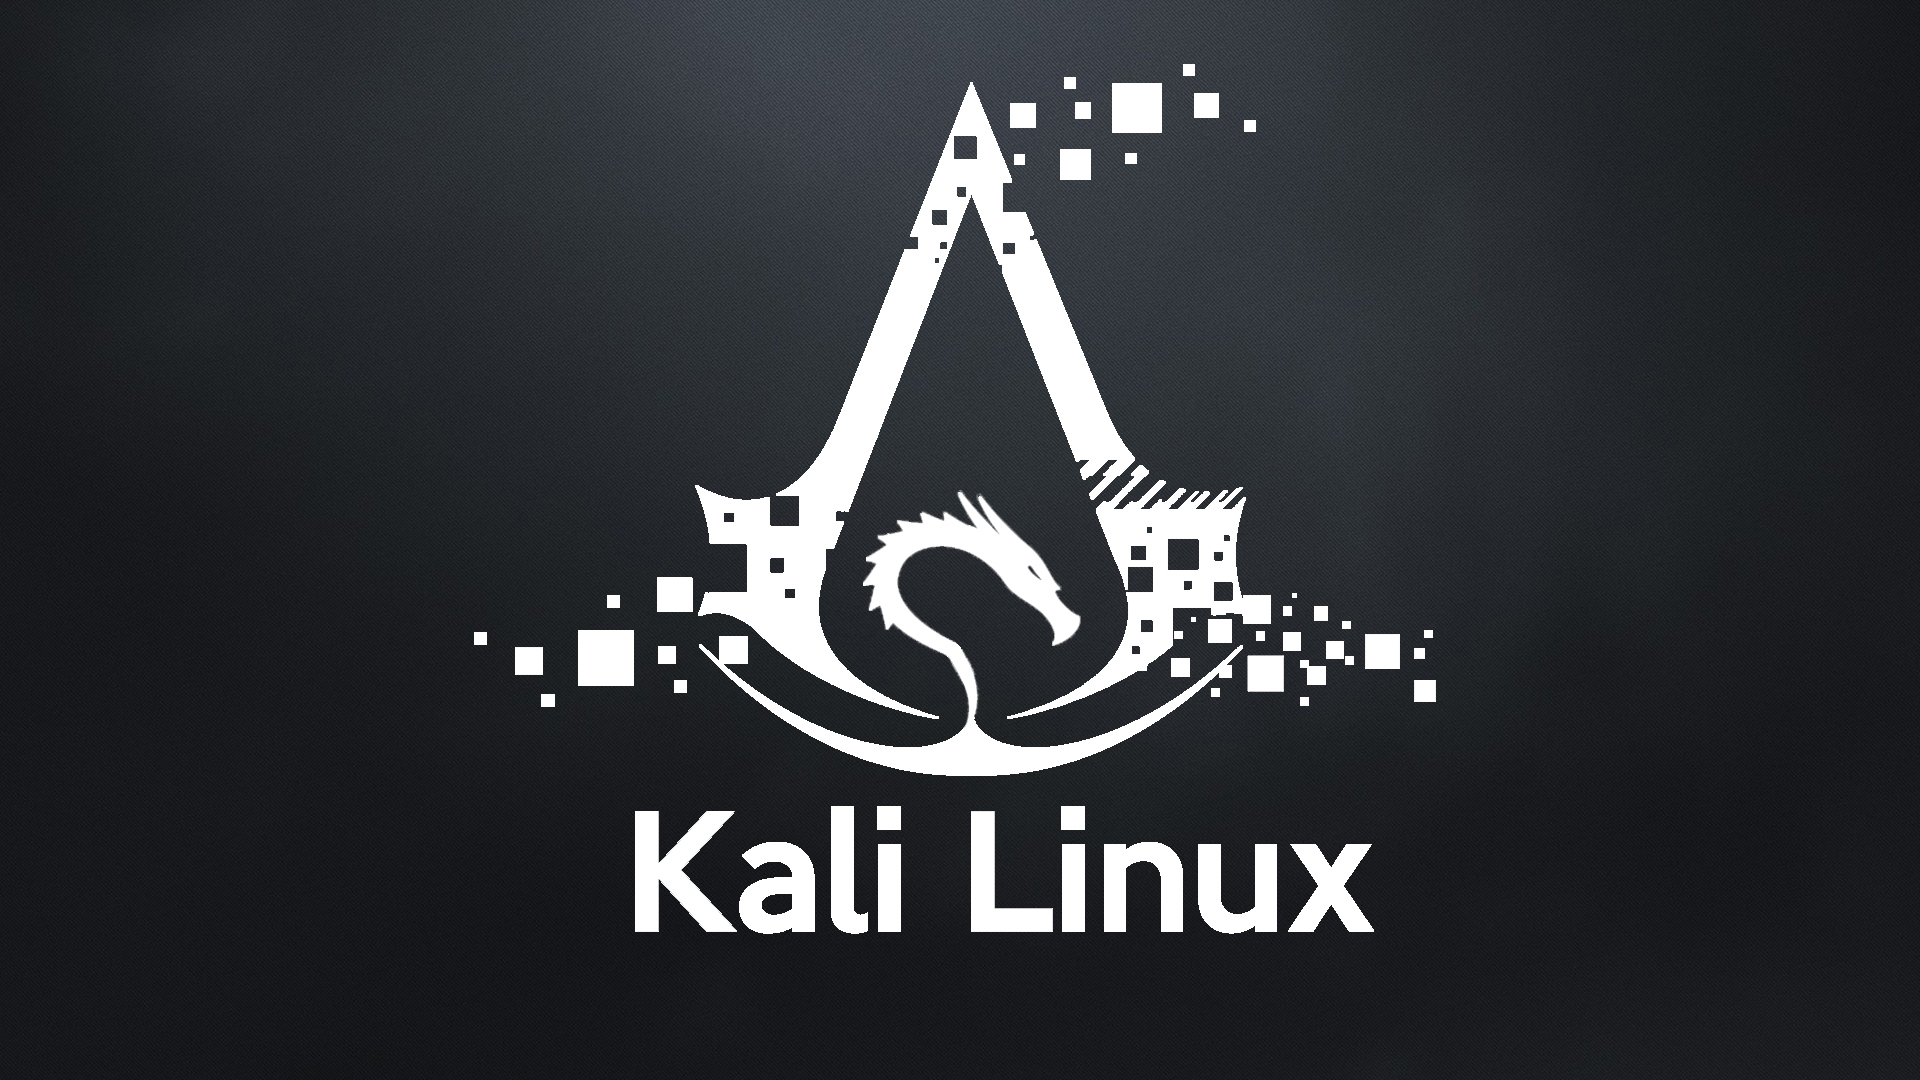 Hackers your favourite pentesting os kali linux can now - Kali linux wallpaper download ...